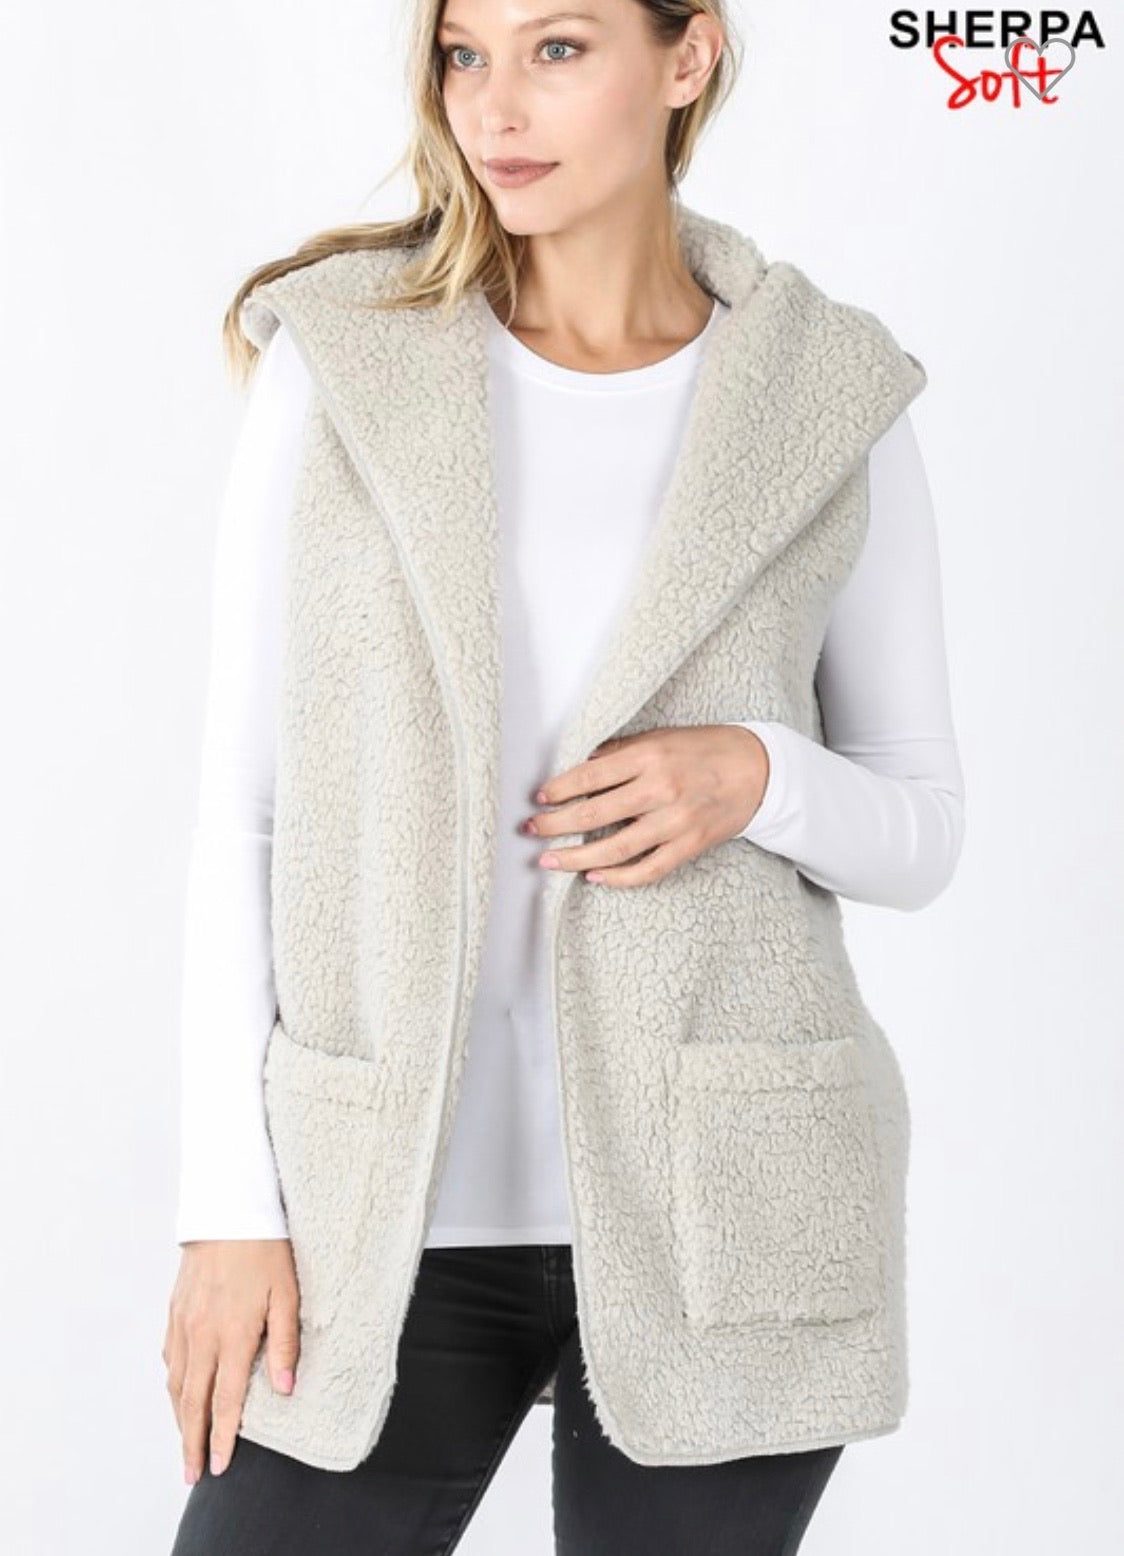 Light Grey Sherpa Vest